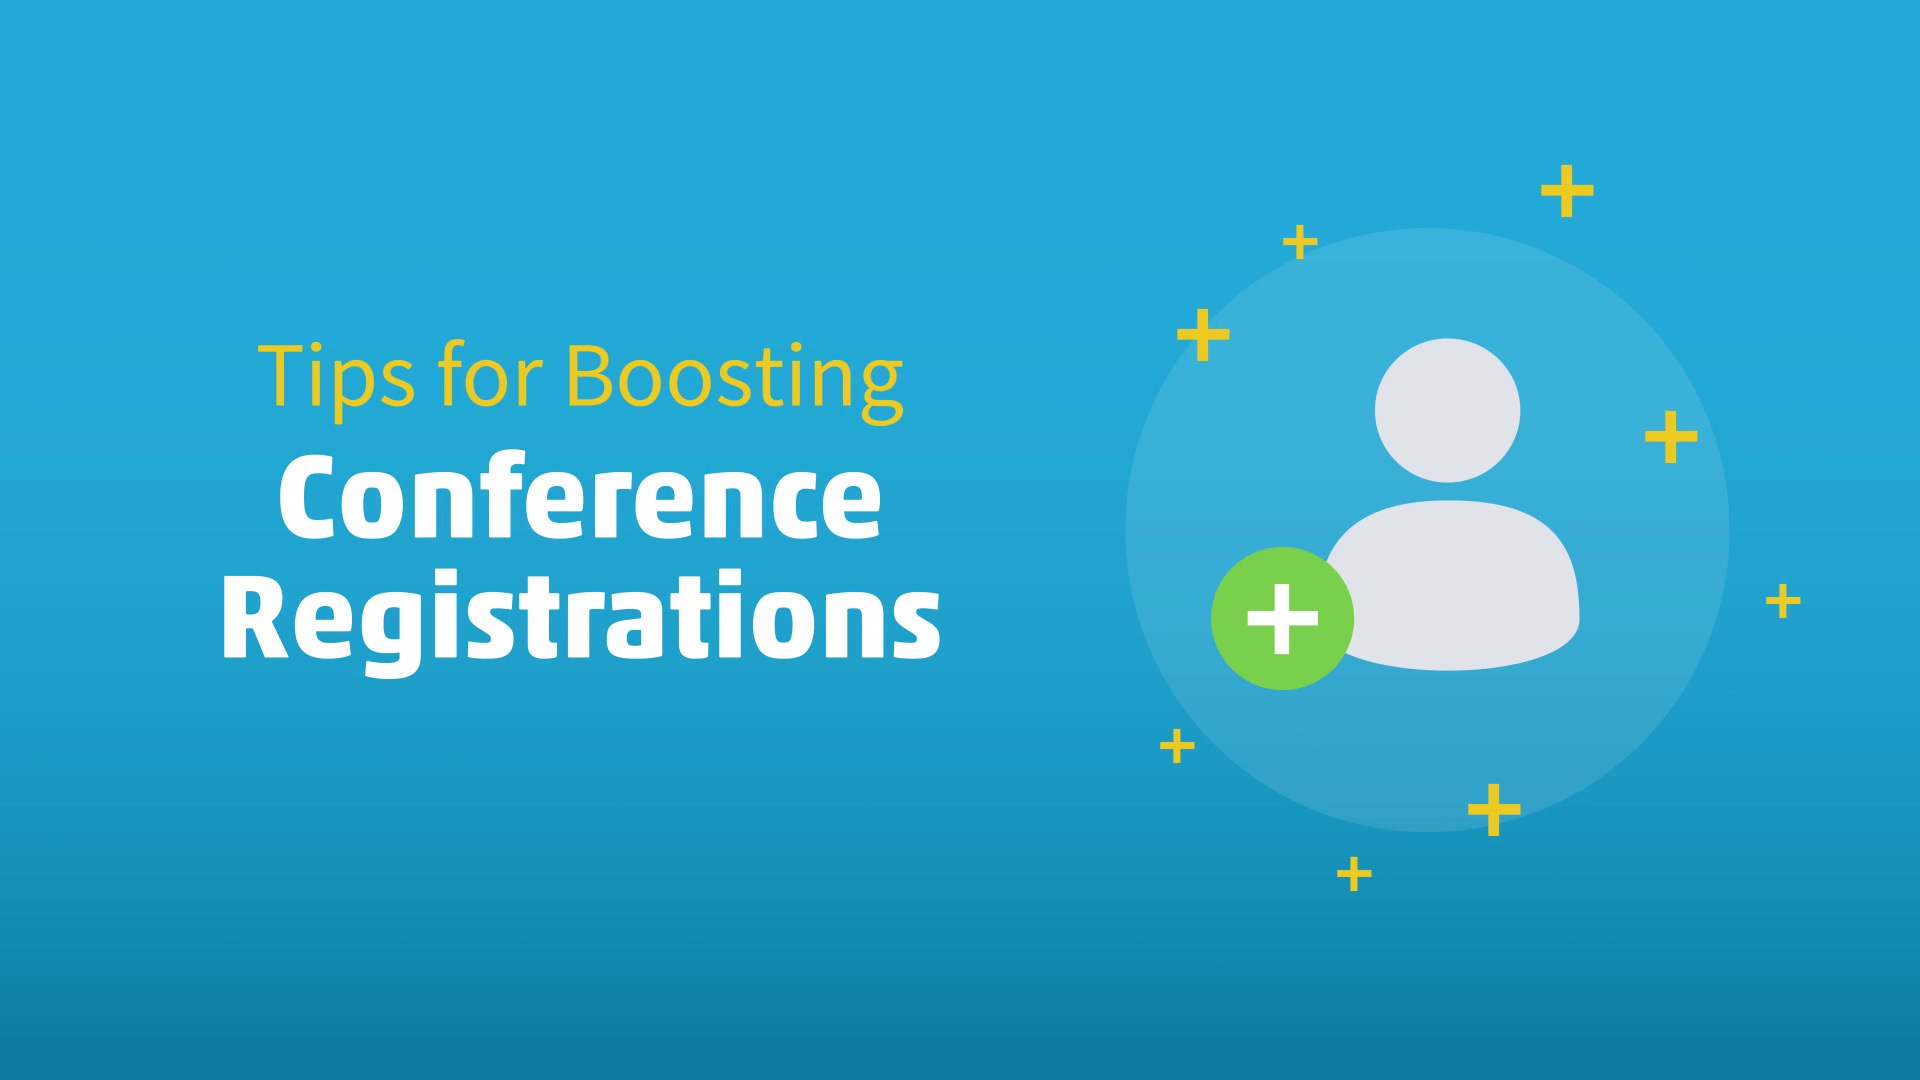 The Highlight Reel - Boosting Conference Registrations